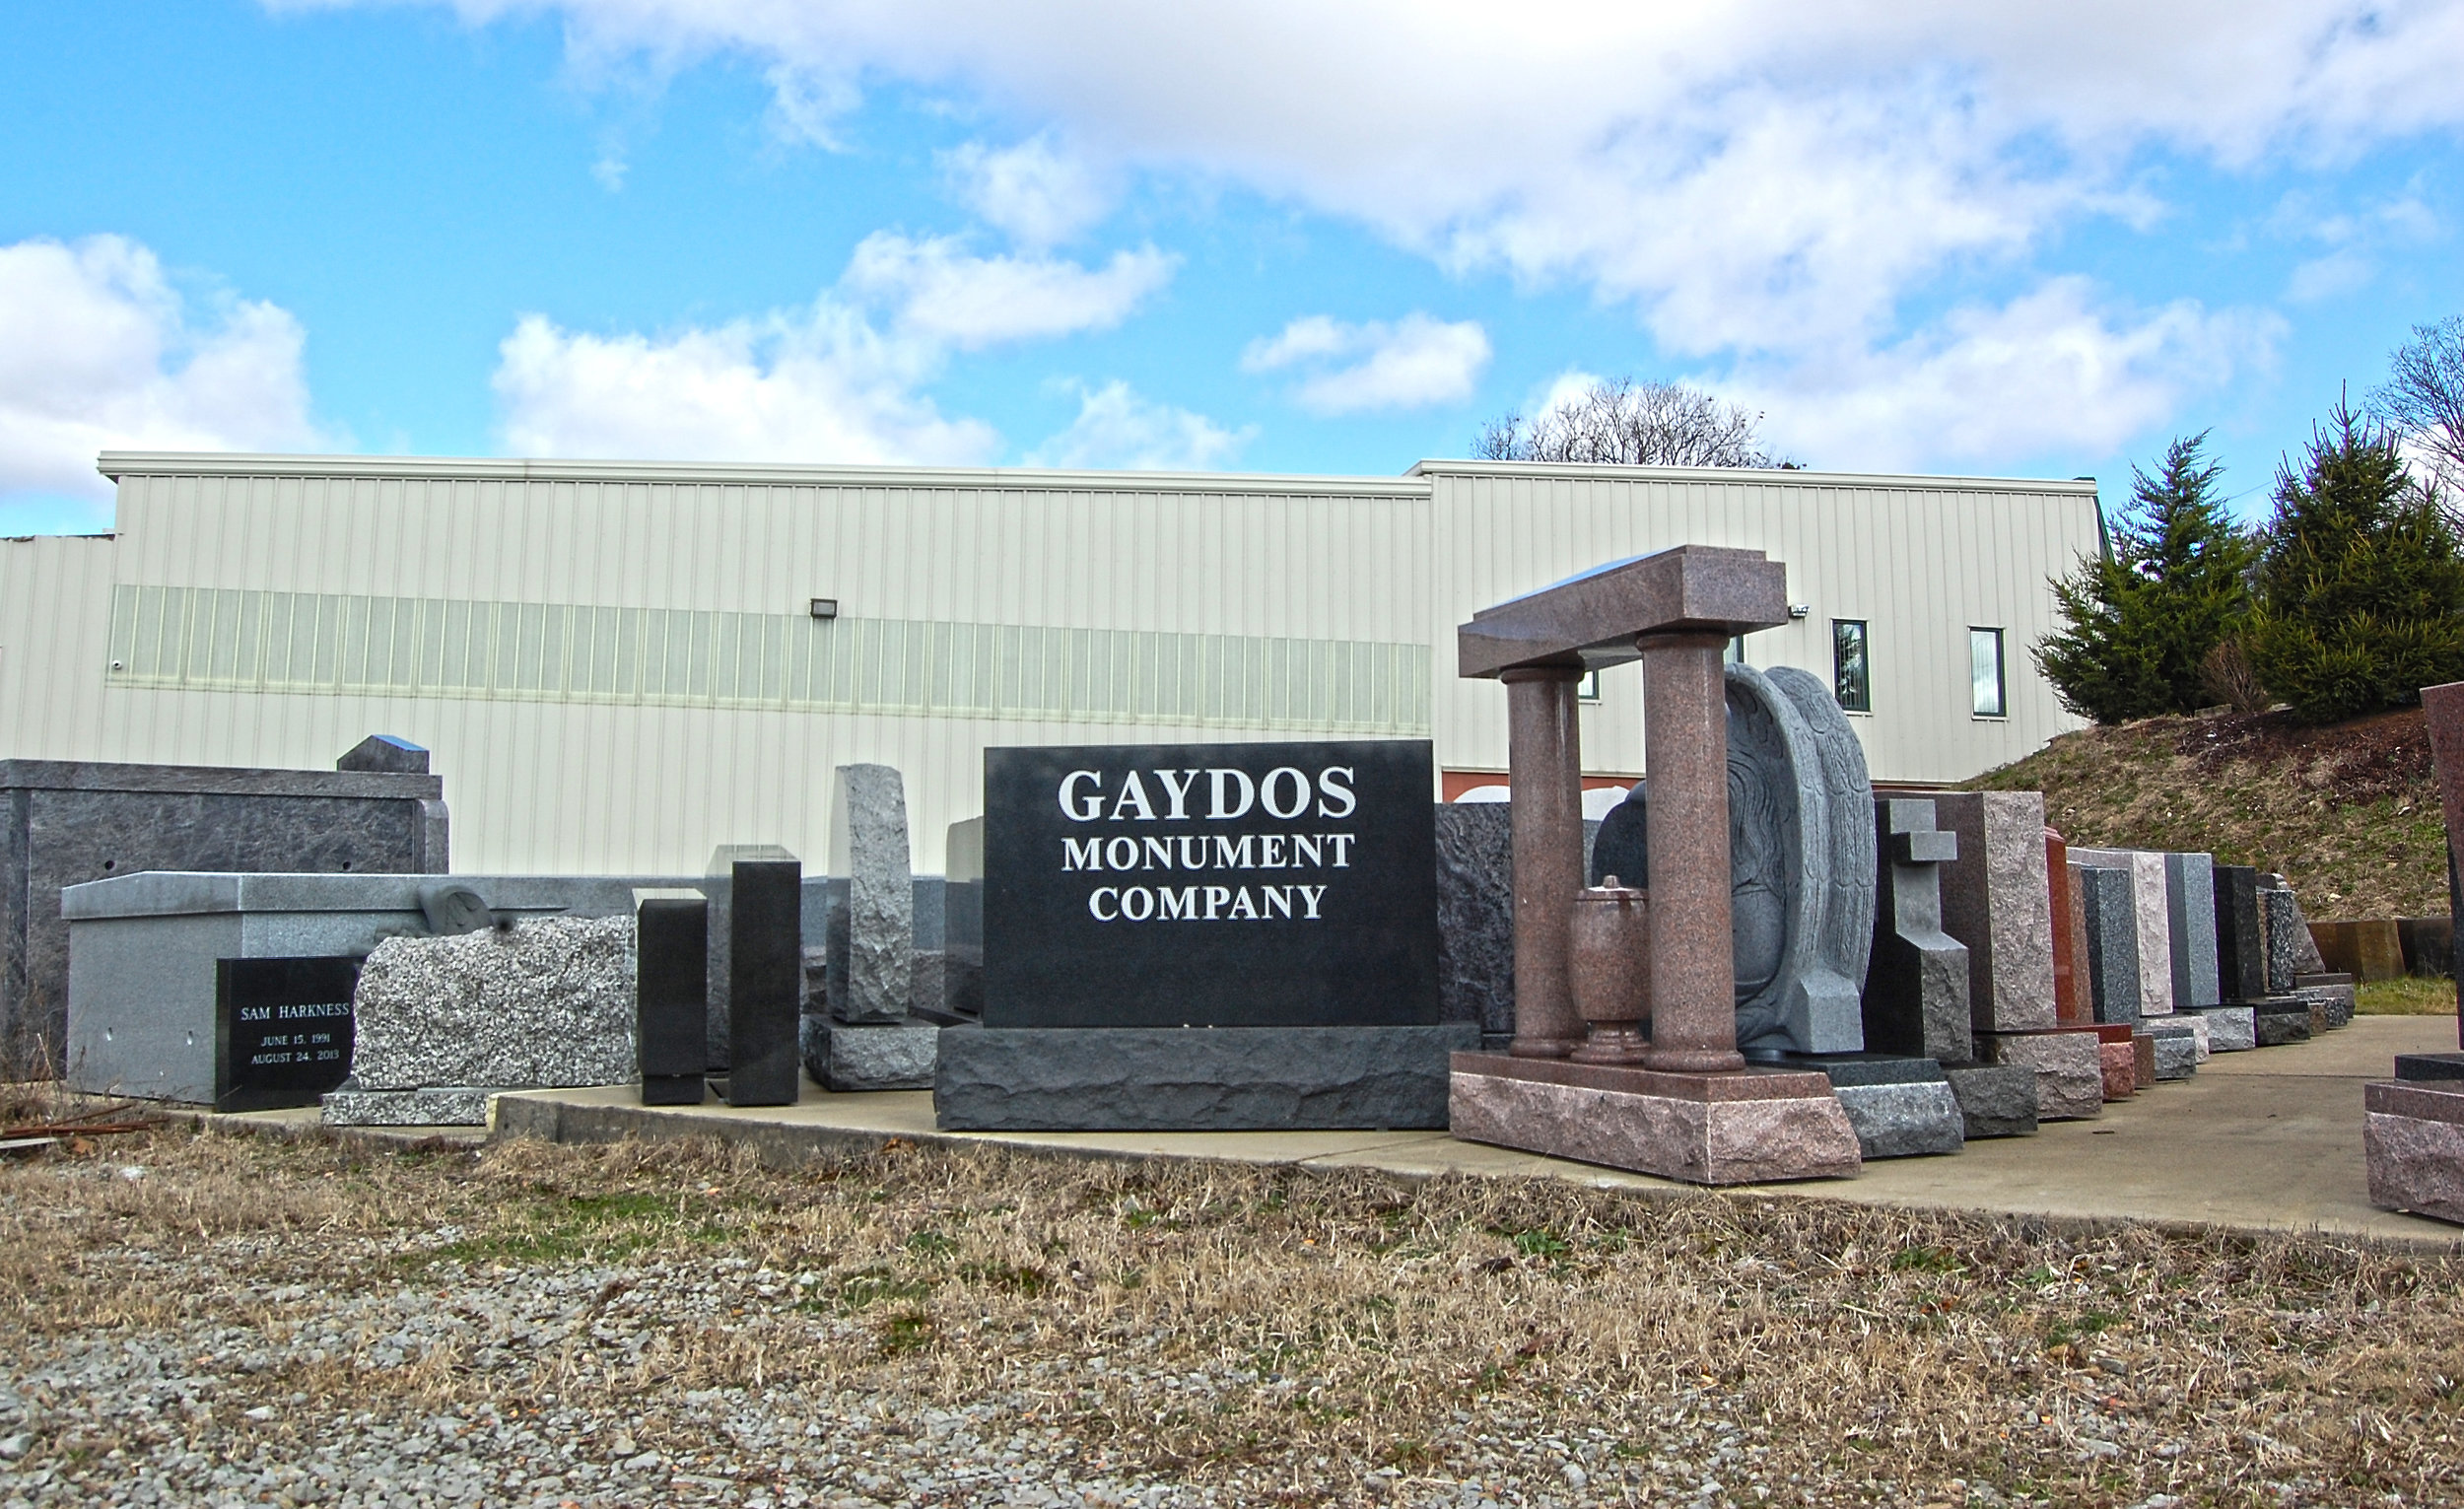 NON-PROFIT CEMETERIES - Gaydos specialize in developing sales programs for non-profit cemeteries. Our non-profit cemetery accounts typically sell hundreds of thousands of dollars of monuments each year to their retail customers. If you are looking to increase revenue for your non-profit cemetery please let us show you how easy it is to develop a monument sales program or enhance your existing program with our competitive pricing, fabrication and sales expertise, and high level of customer service.